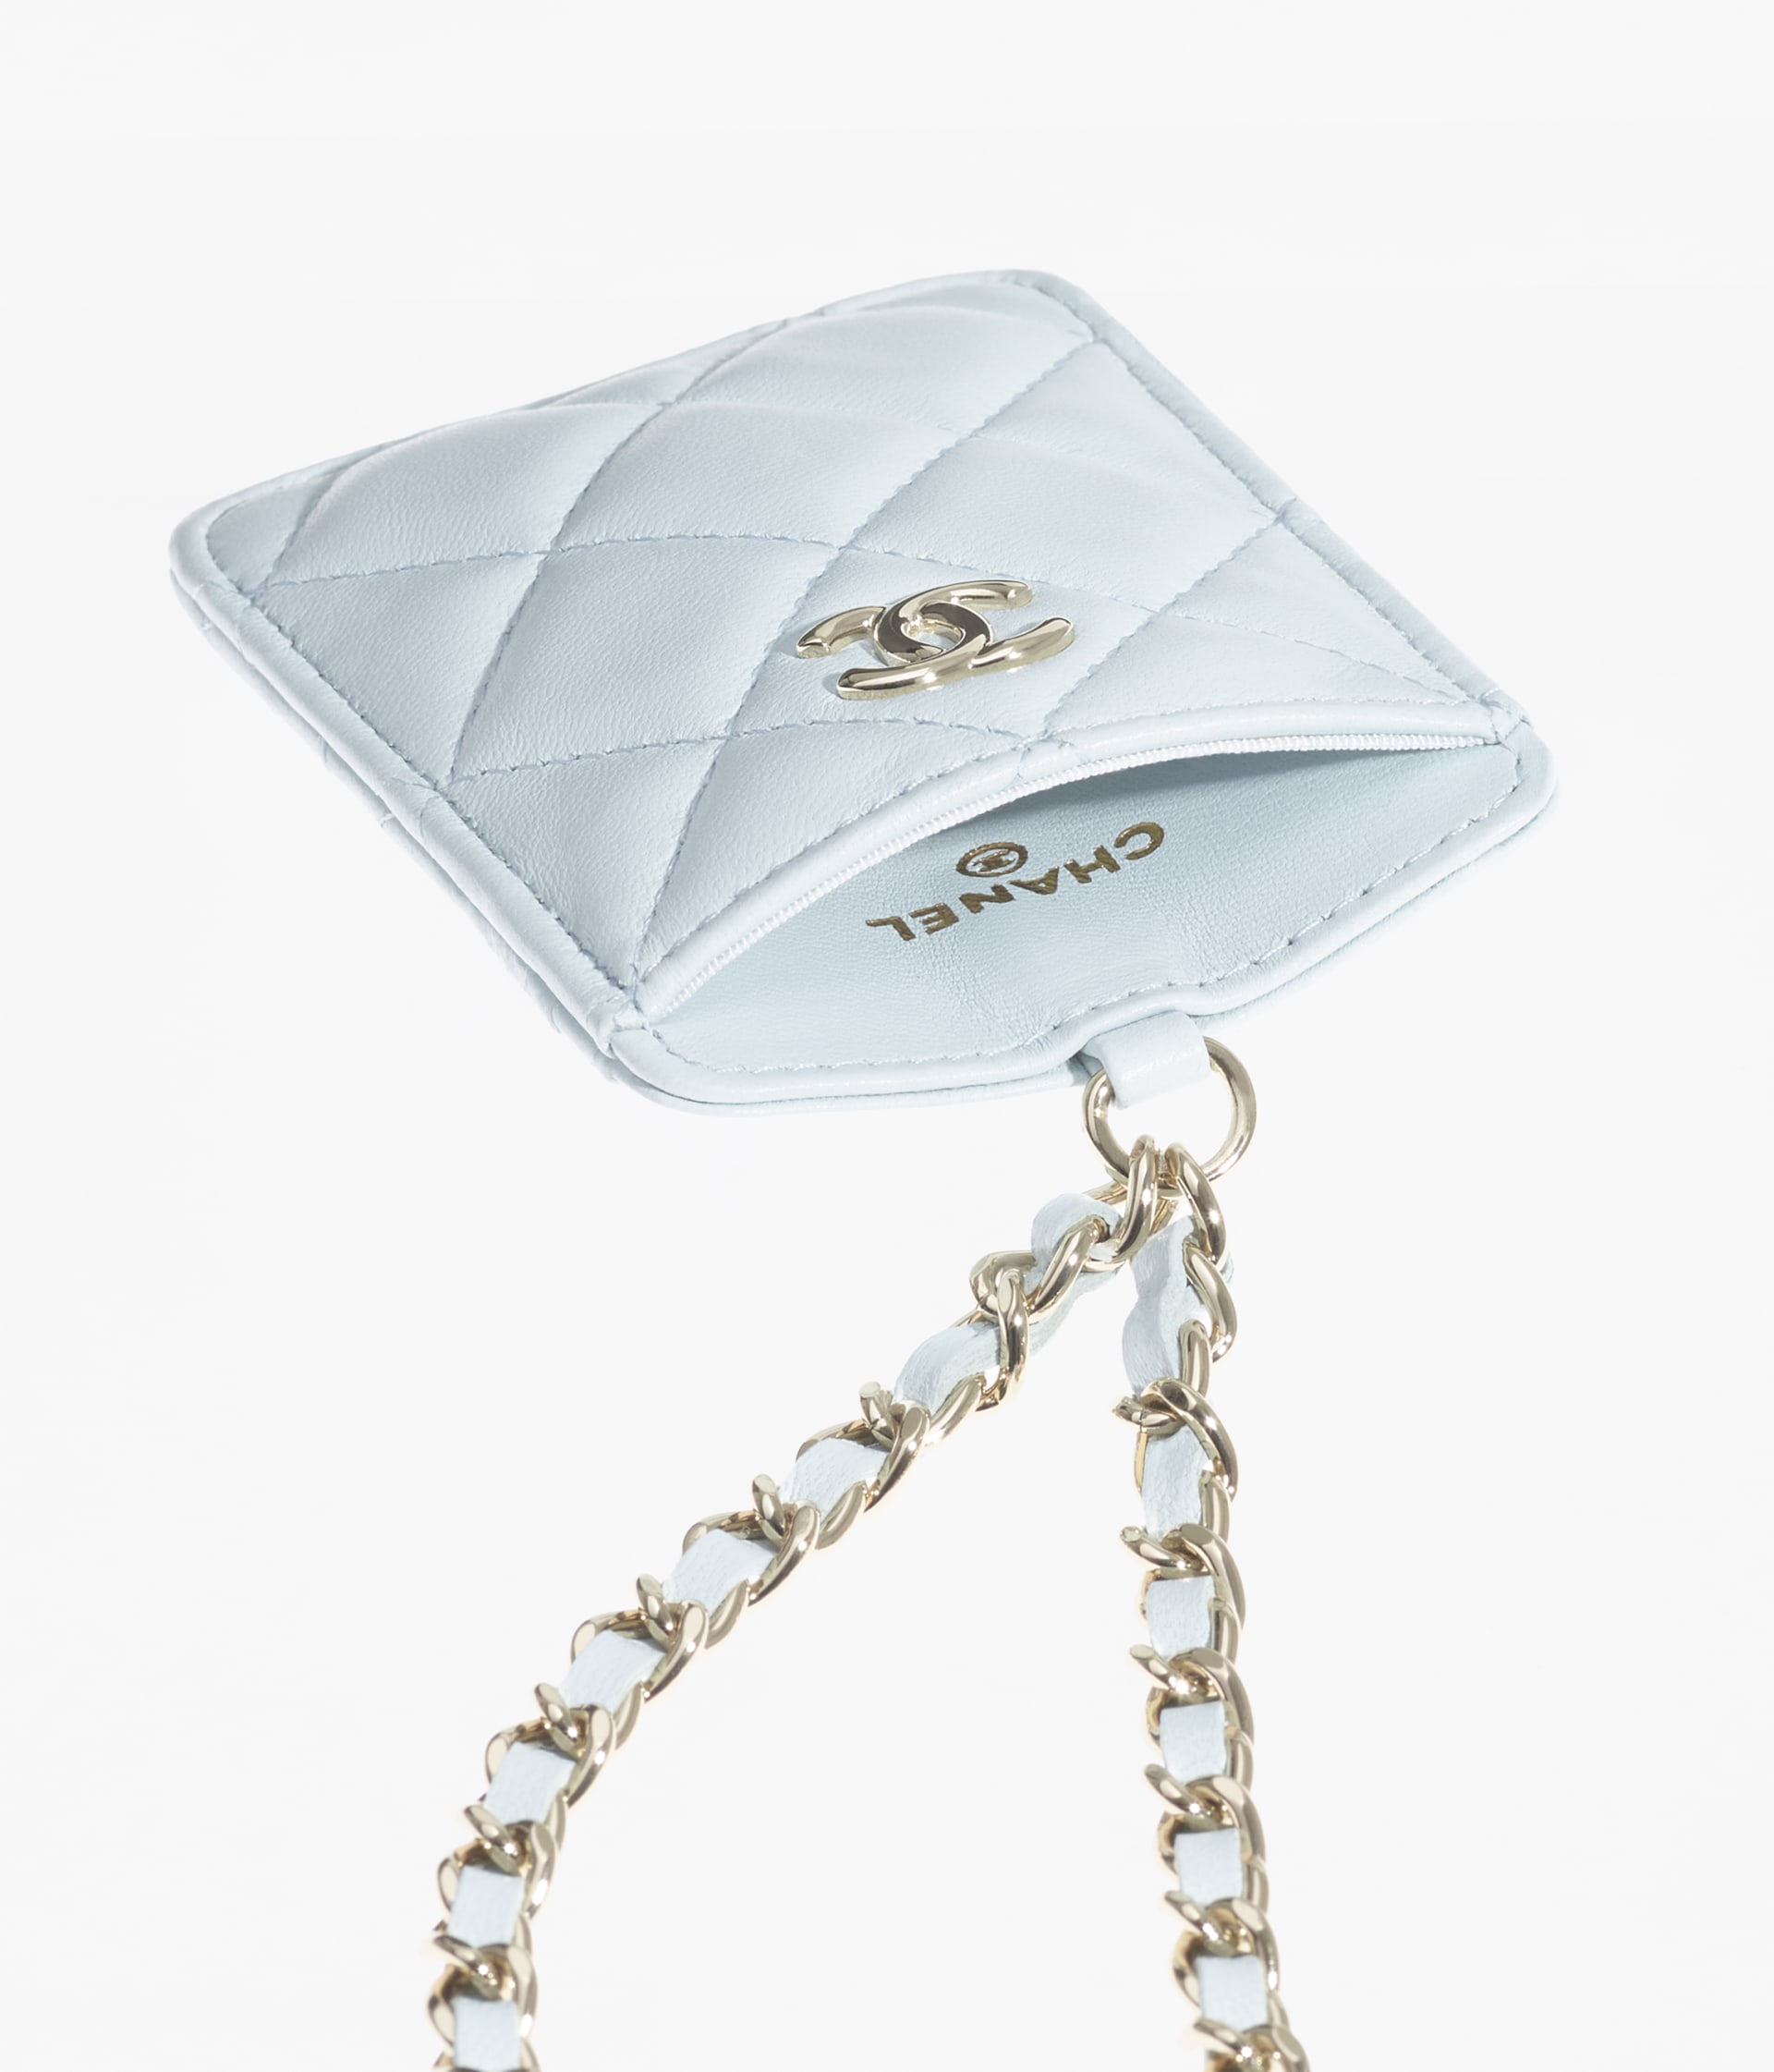 image 2 - Card Holder with Chain - Lambskin & Gold-Tone Metal - Light Blue